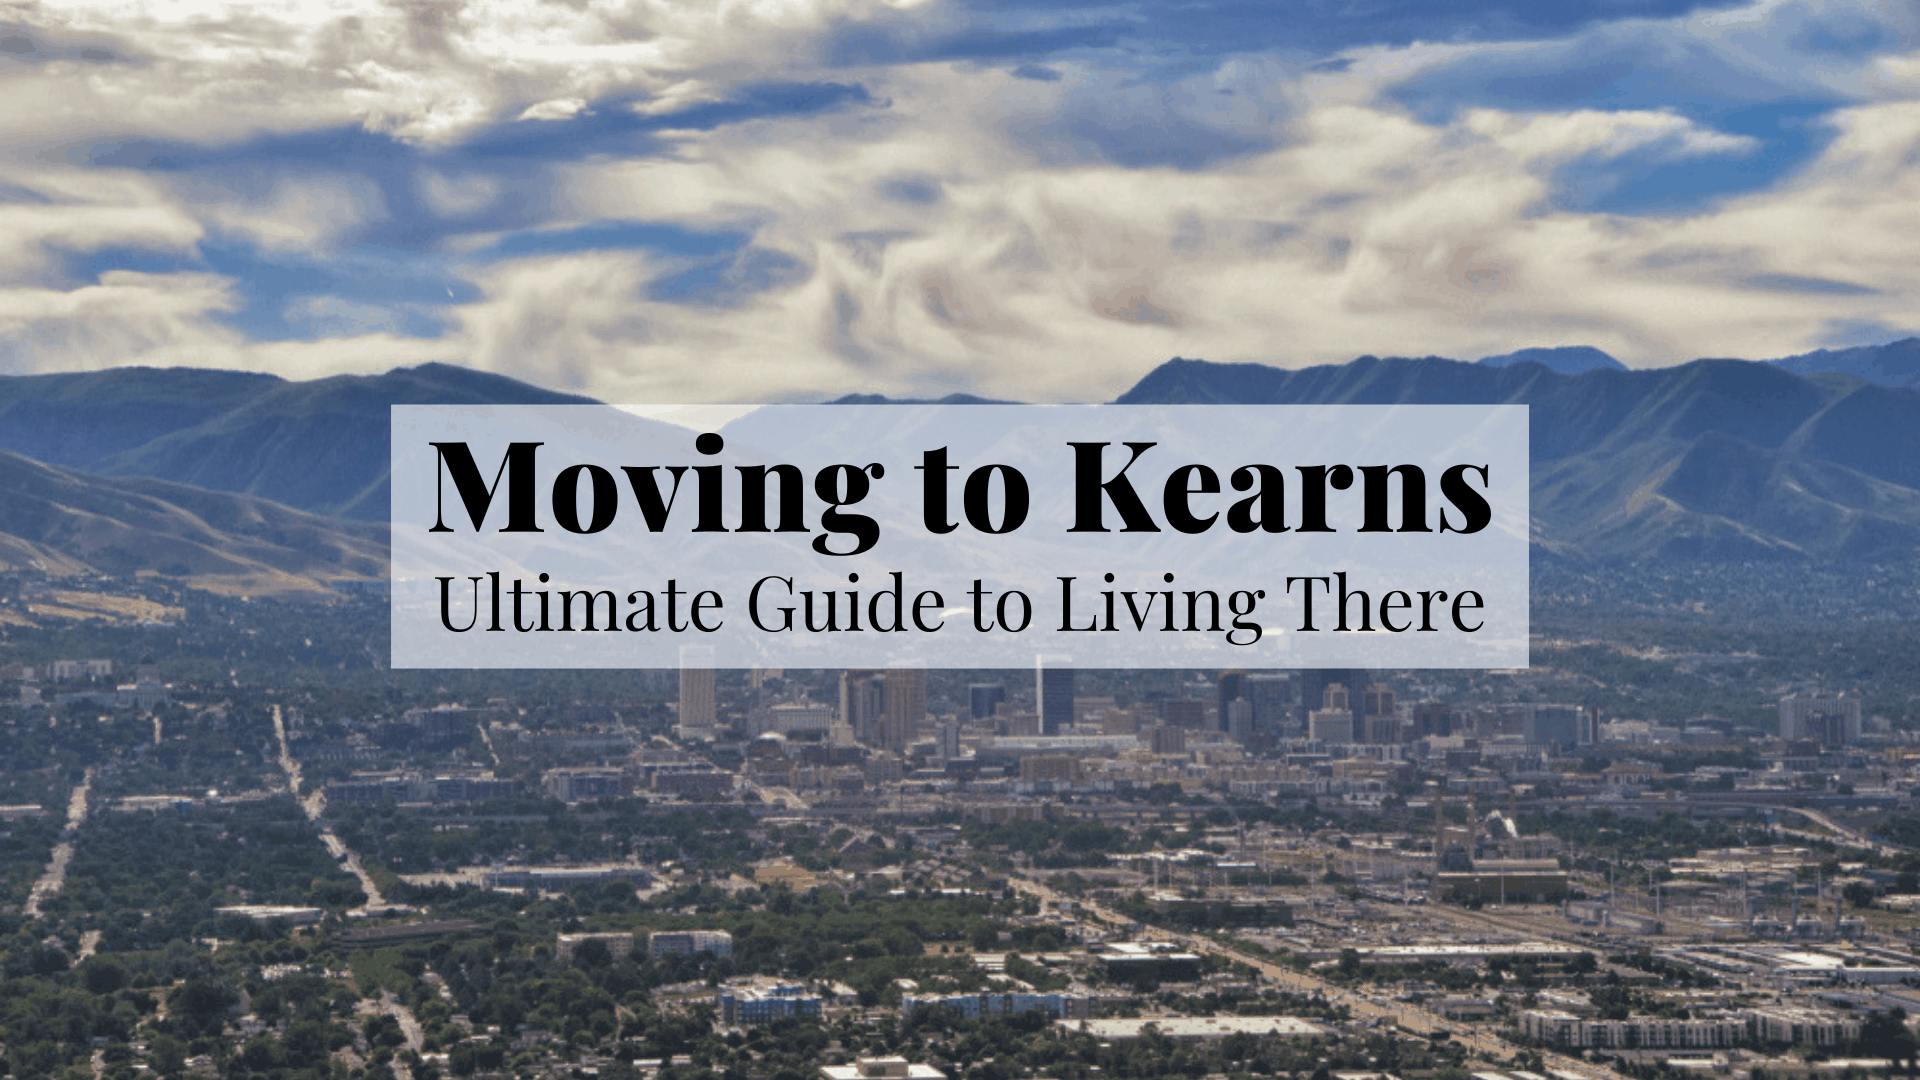 Moving to Kearns - Ultimate Guide to Living There